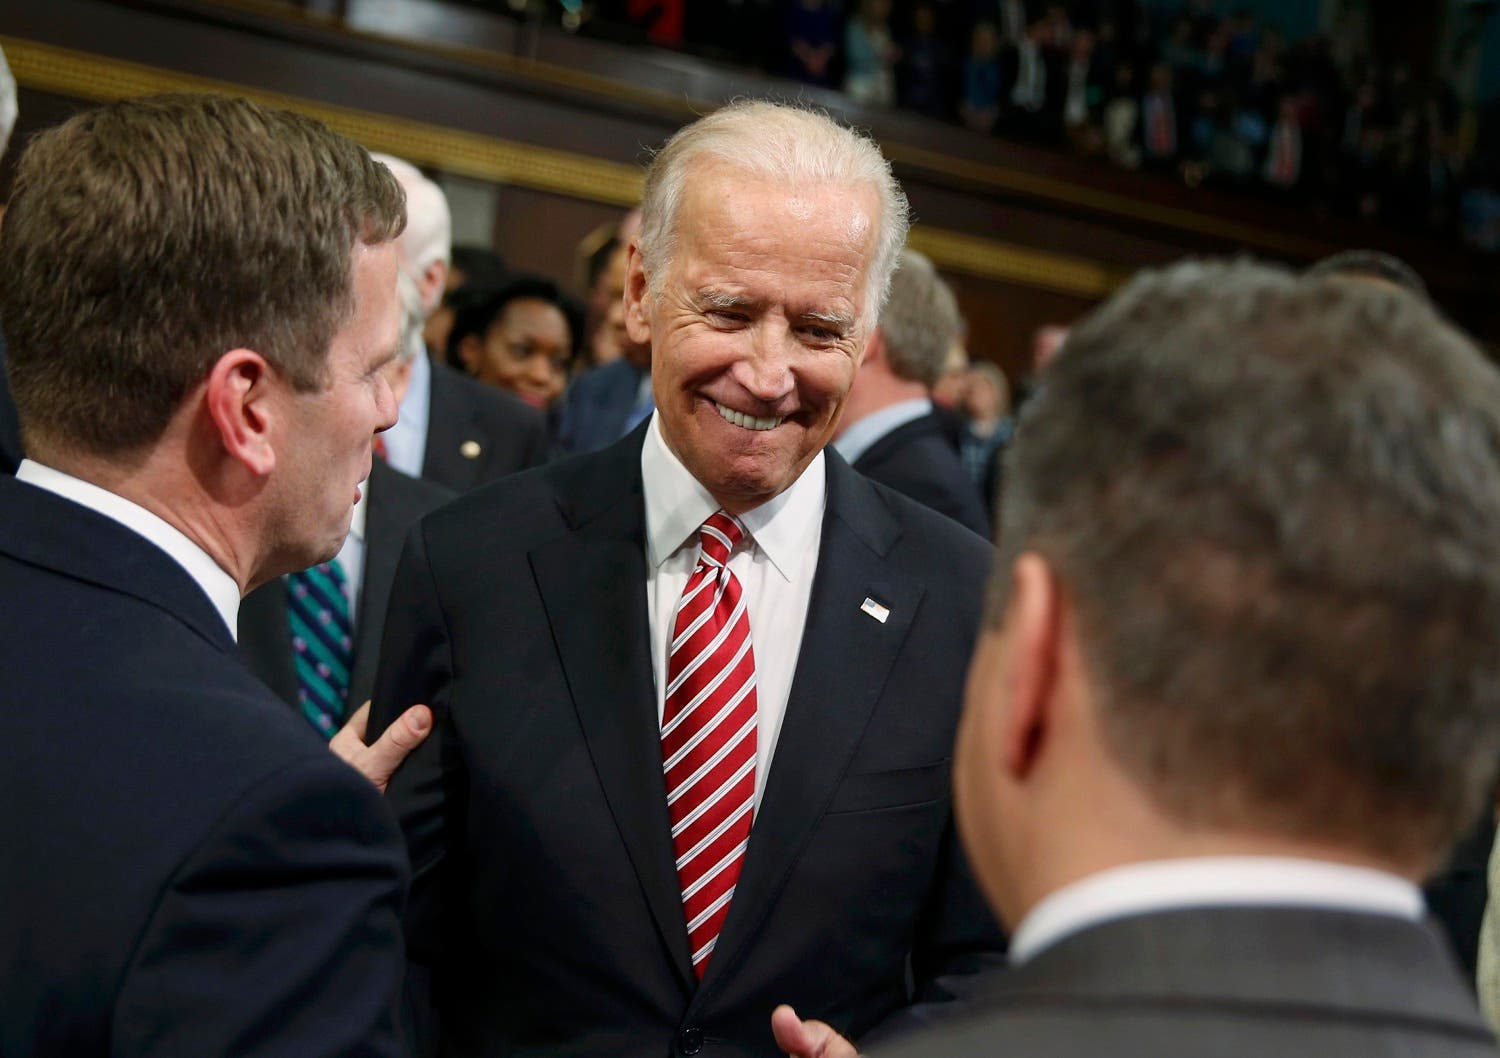 U.S. Vice President Biden arrives prior to President Obama's State of the Union address to a joint session of Congress in Washington. (AP)